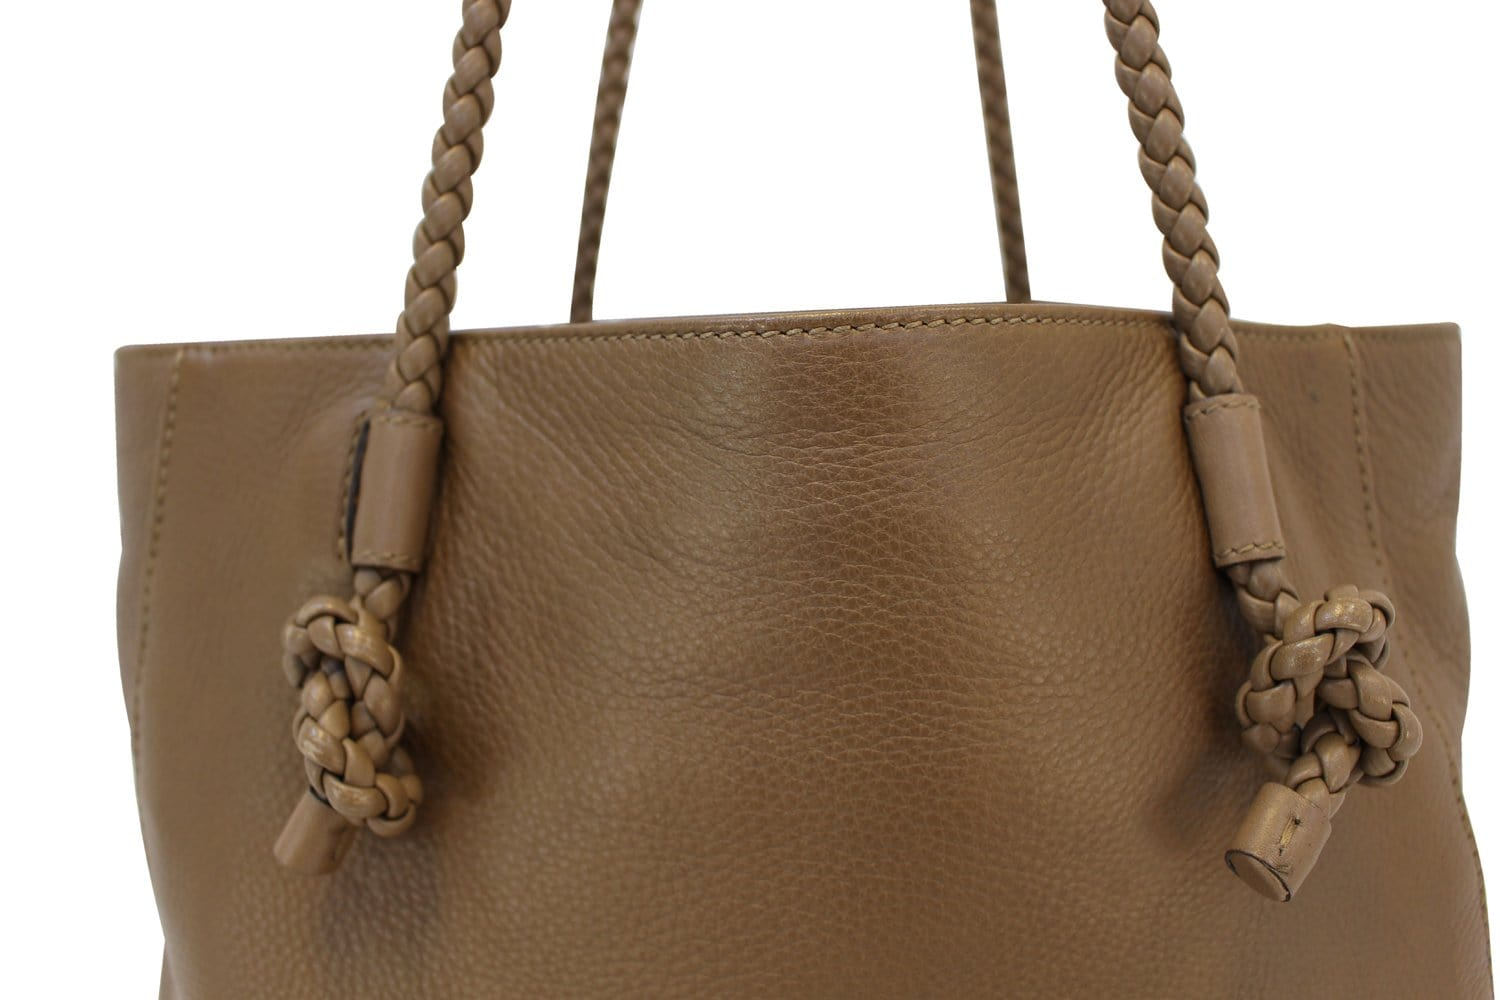 ddc7f3bc5 GUCCI 267903 Mesh Hand Leather Brown Tote Bag - Sale